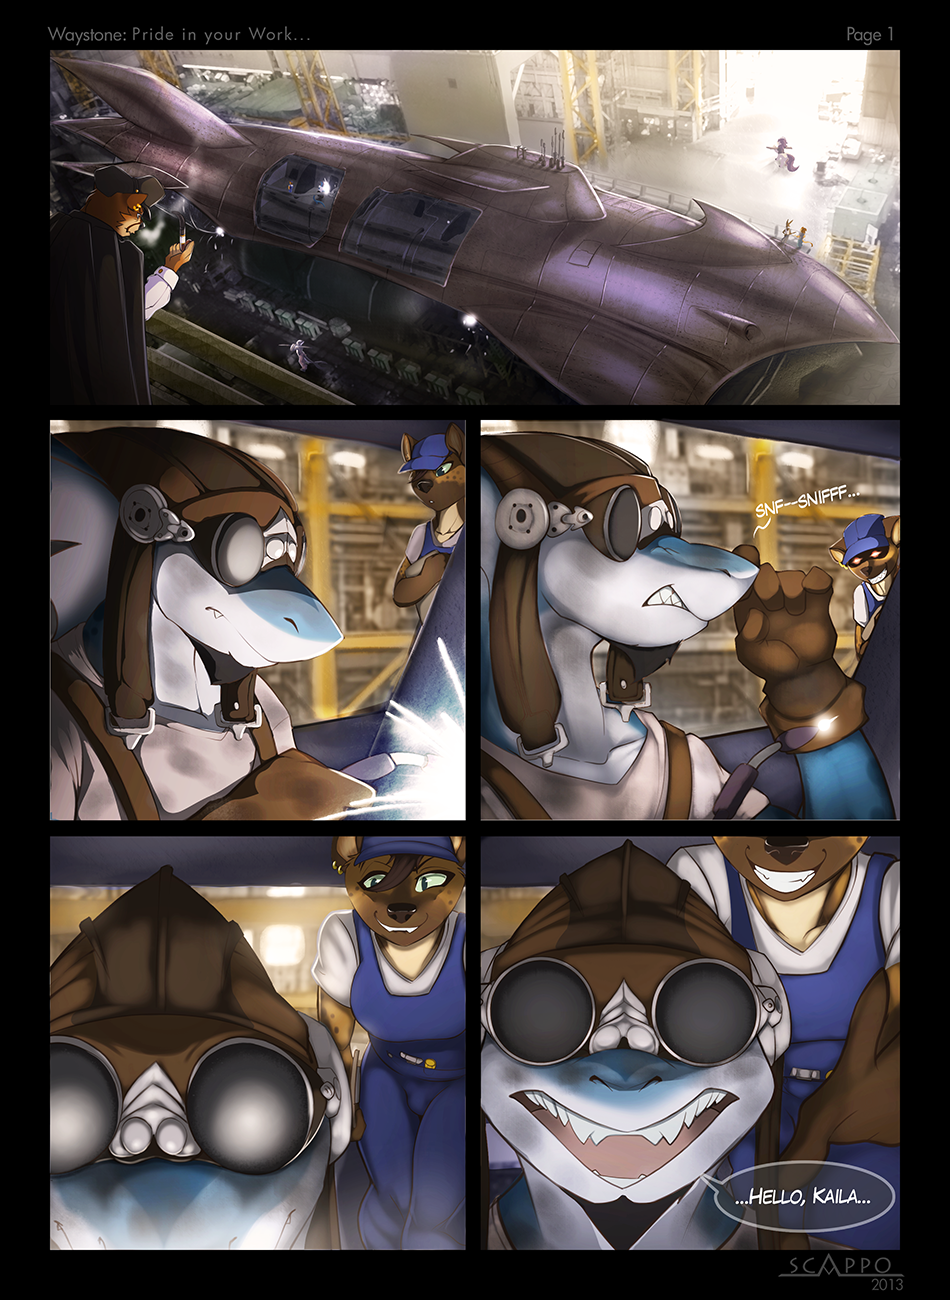 Pride in your Work: Page 1